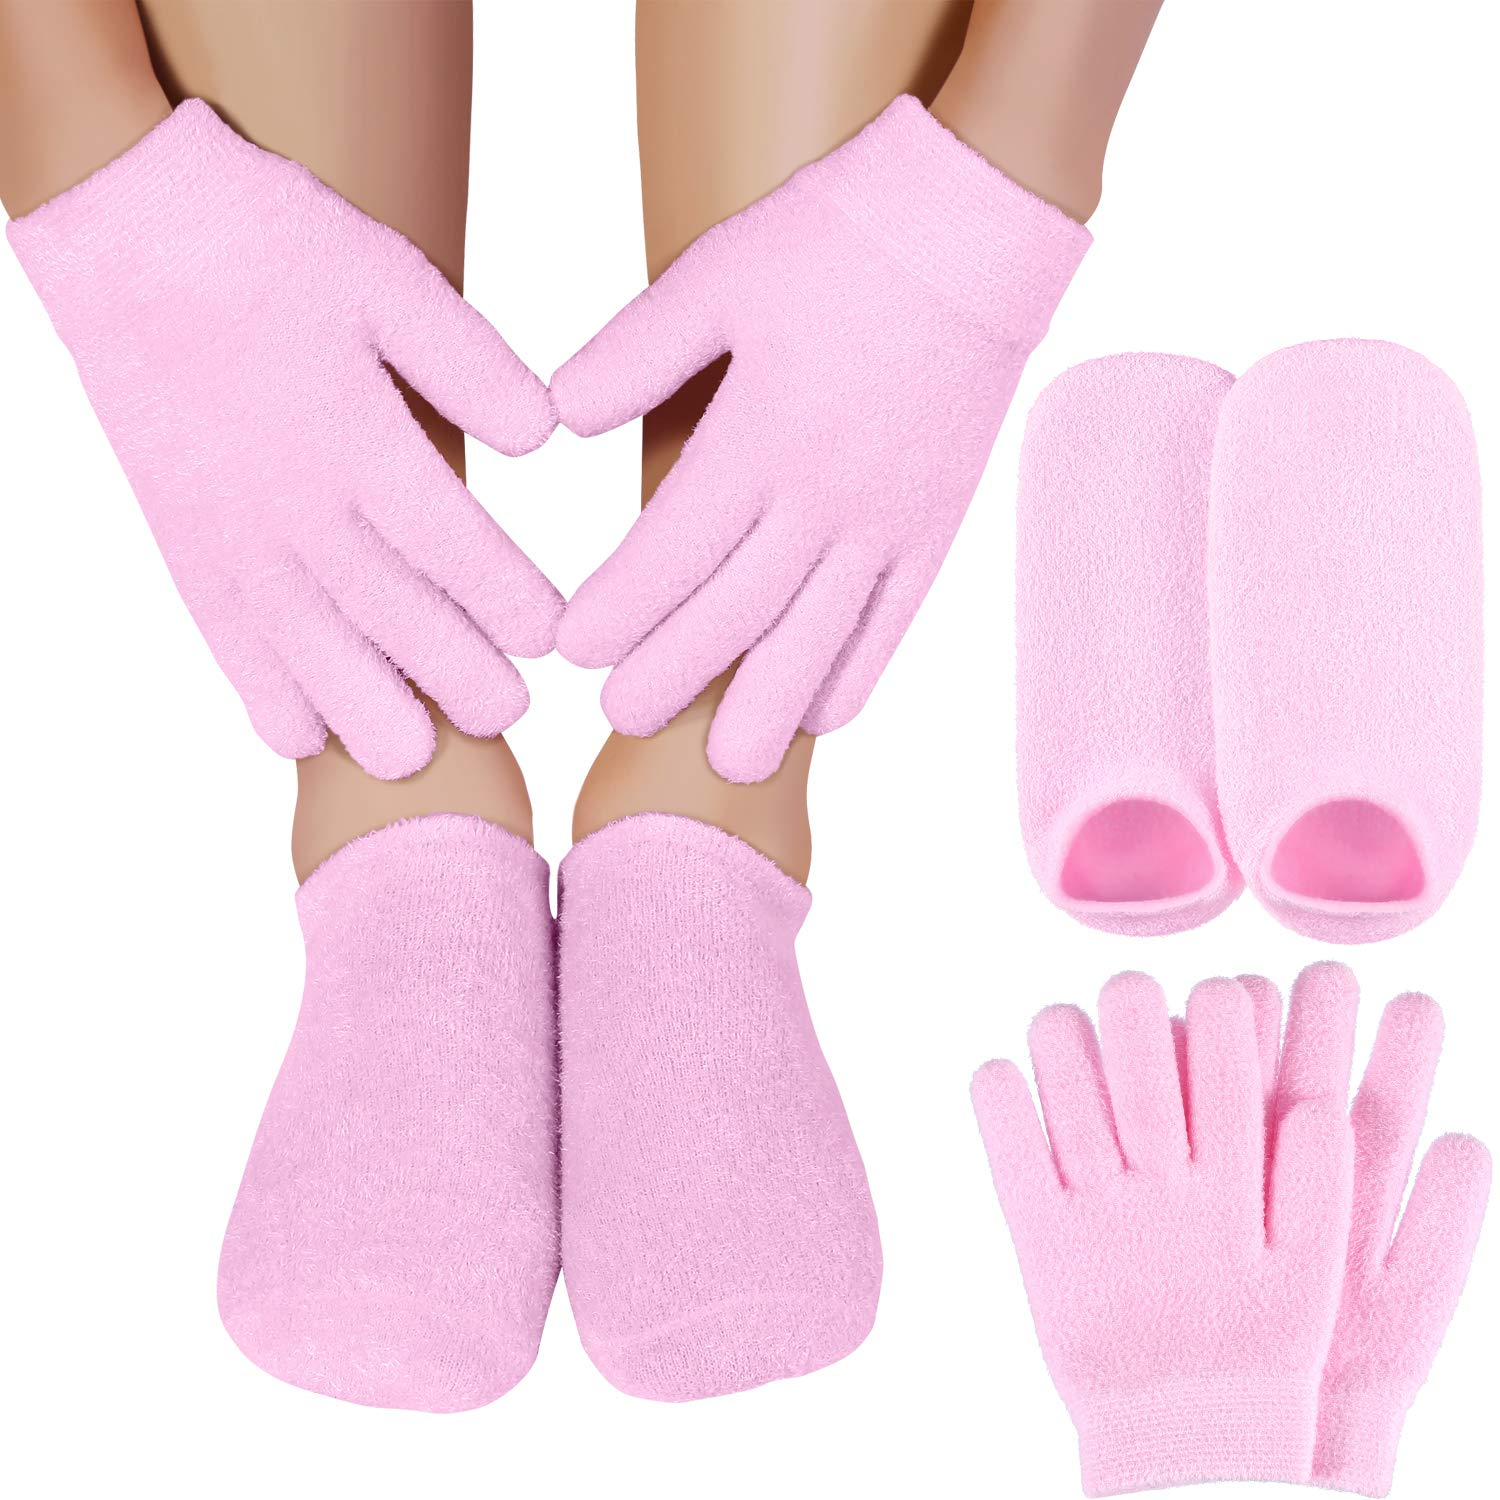 Bememo Moisturizing Spa Gel Gloves and Socks Set Dark Pink for Women and Kids to Repair Dry Rough and Cracked Hands